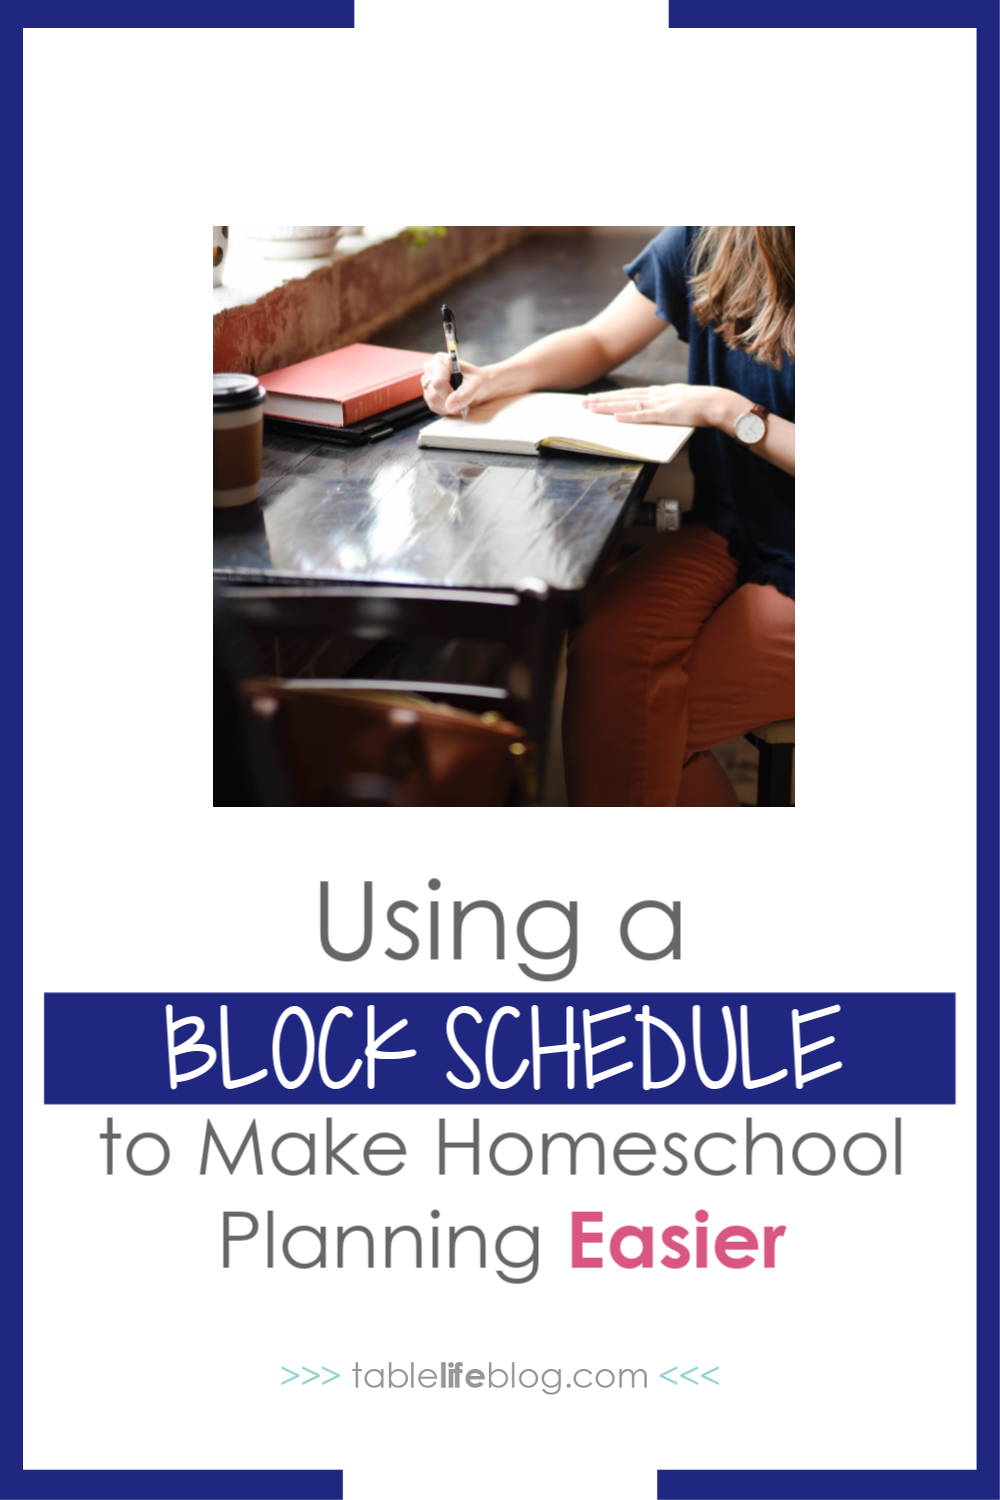 Wondering if a homeschool block schedule could meet your planning needs? Amanda shares how she plans her homeschool lessons and how block scheduling keeps her on track, but gives her freedom to embrace child-led learning.